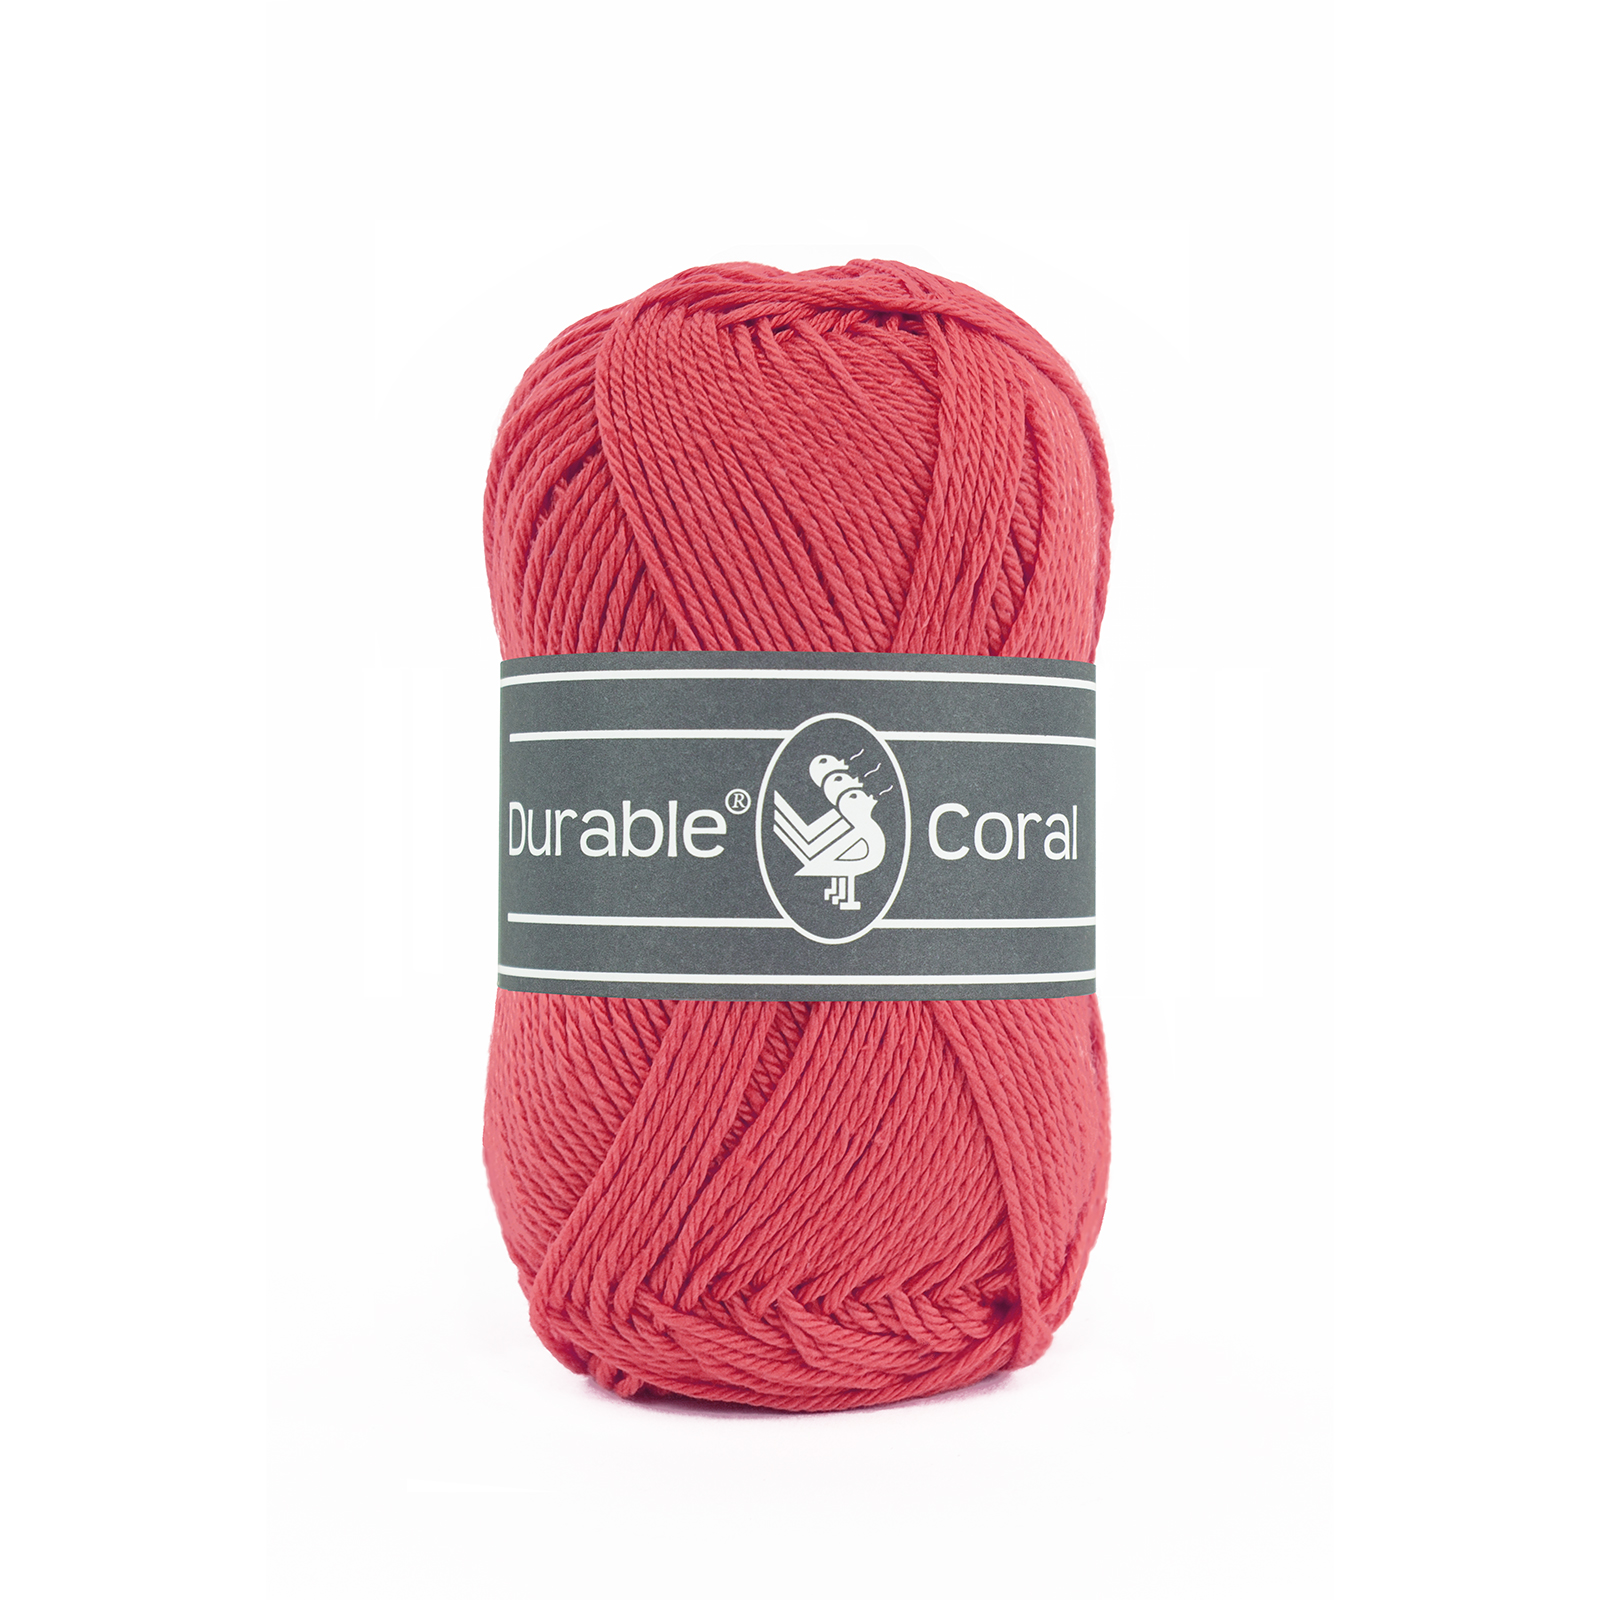 Durable Coral – 221 Holy Berry